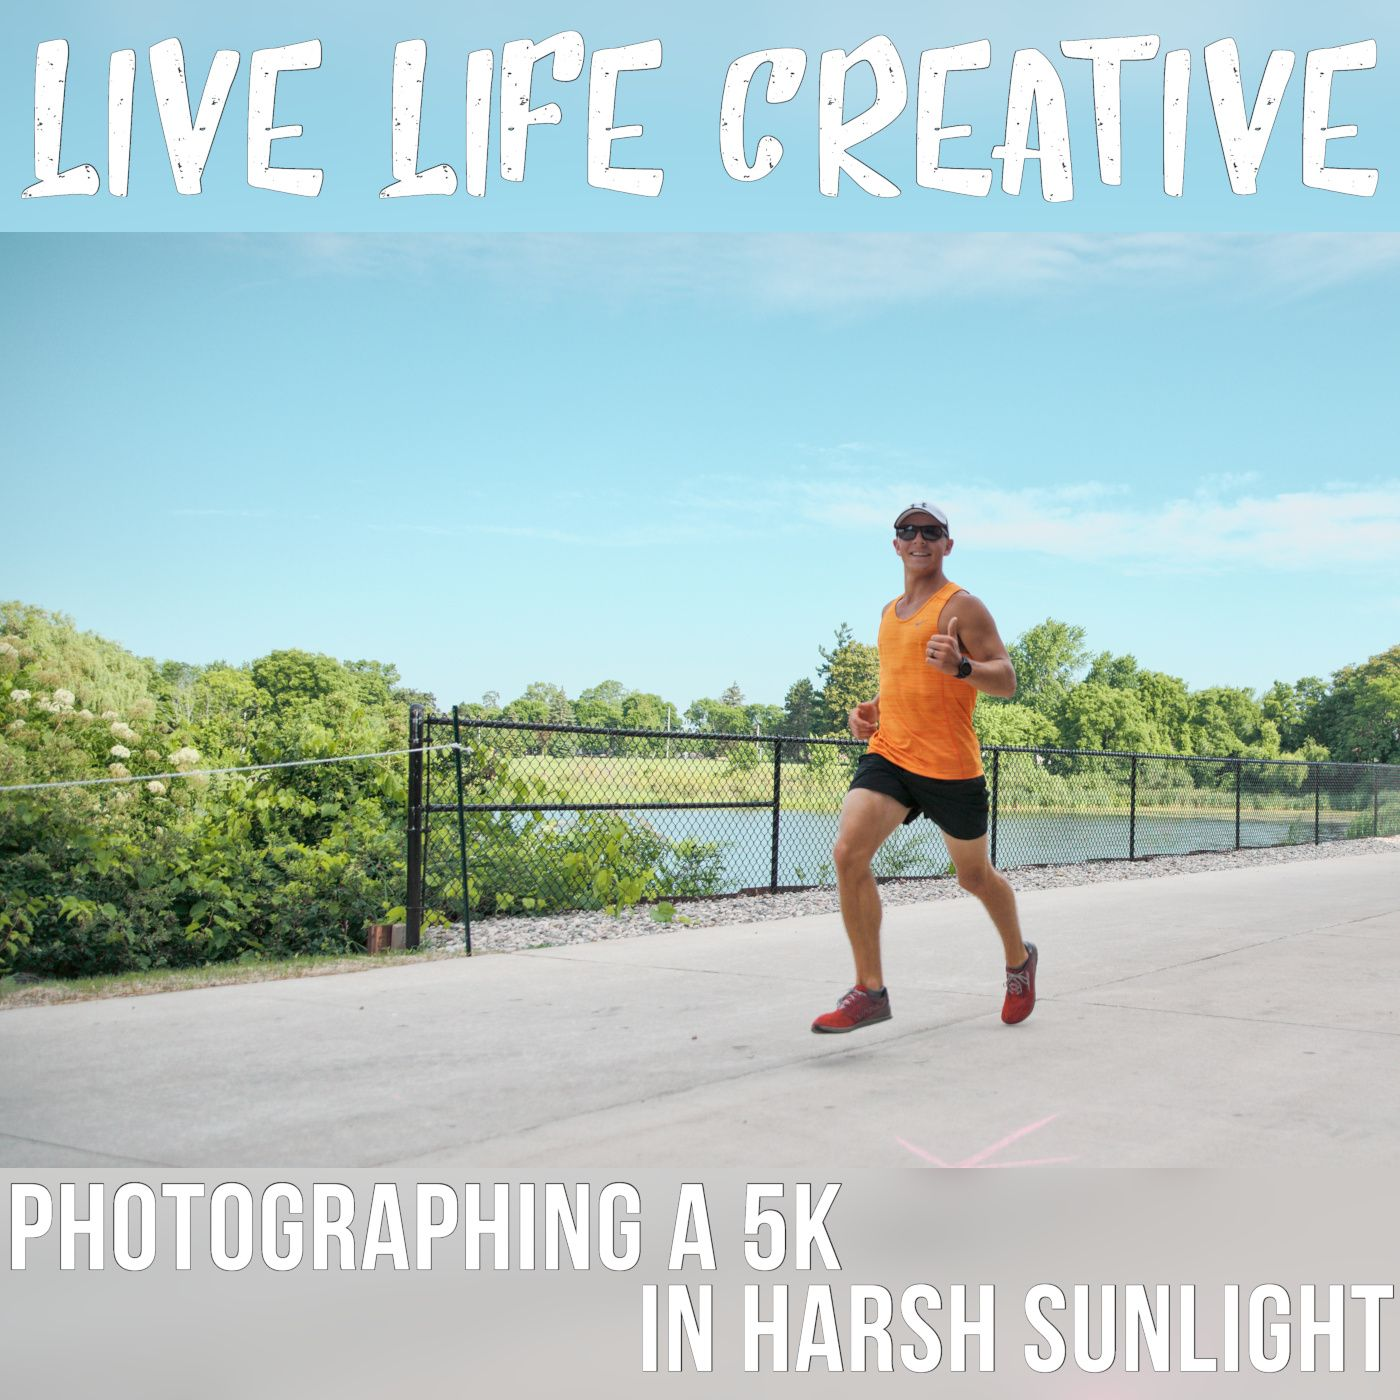 What I Learned Photographing a 5k in Harsh Sunlight